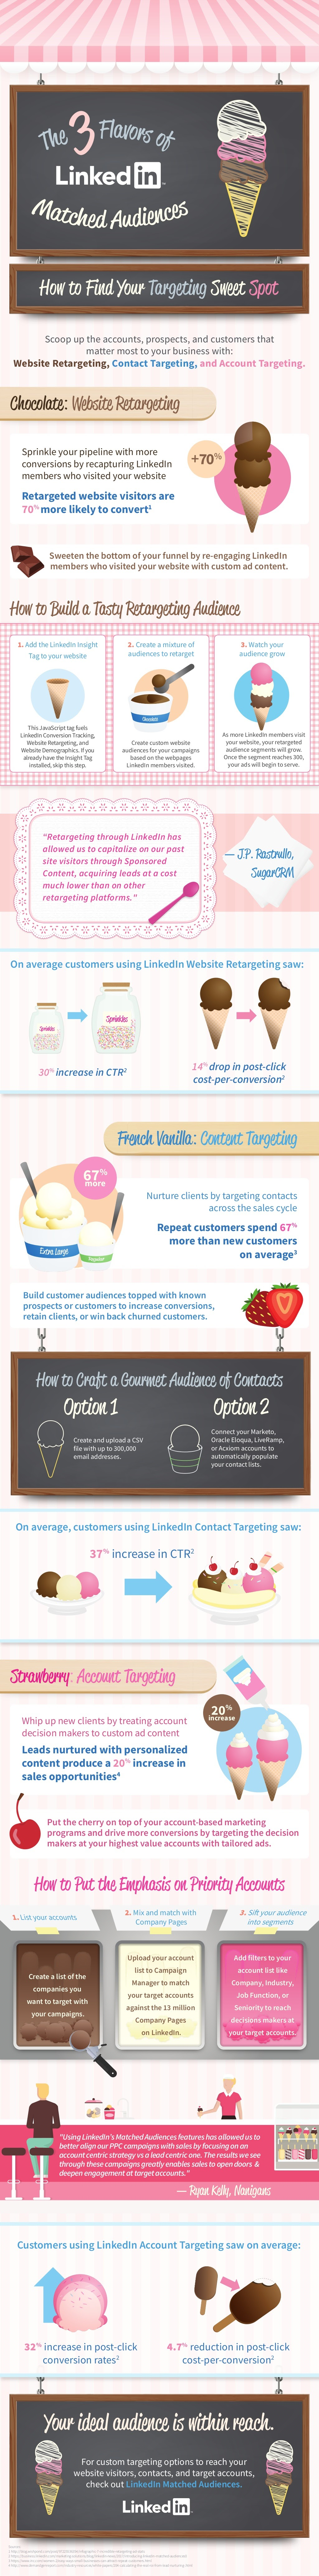 LinkedIn - A Perfect Place For Marketing - Infographic